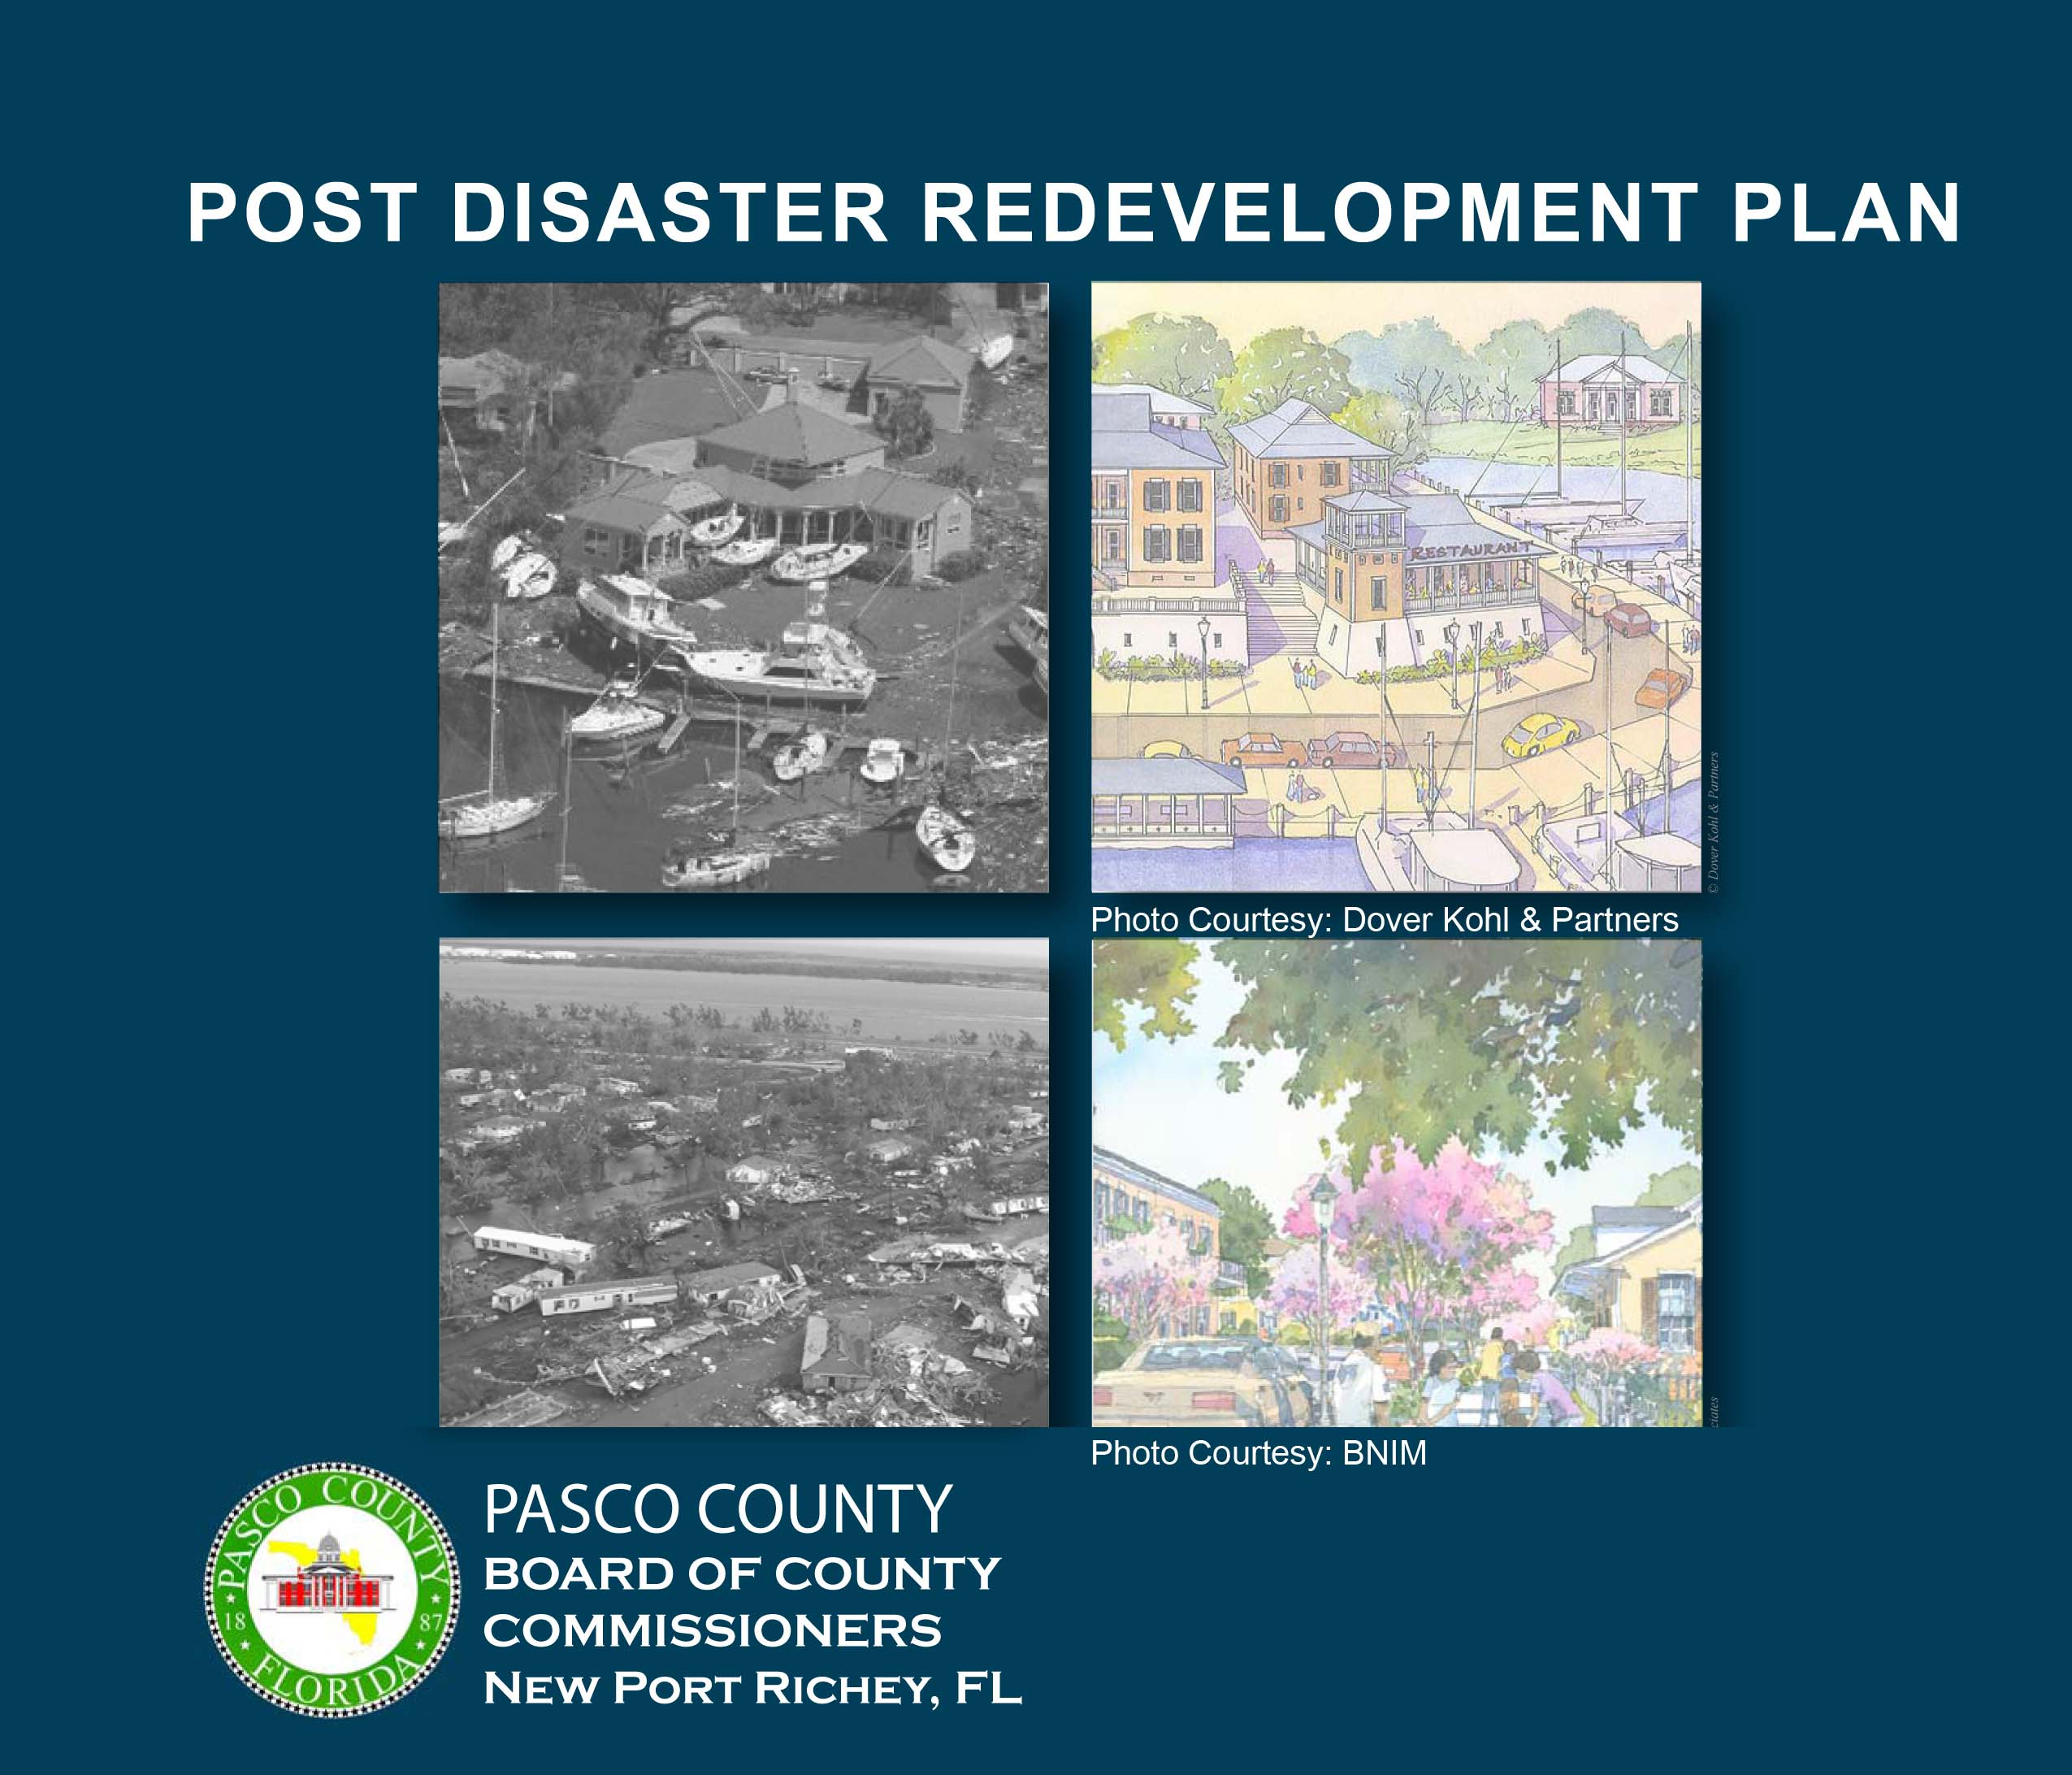 Pasco County's Post-Disaster Redevelopment Plan (PDRP)